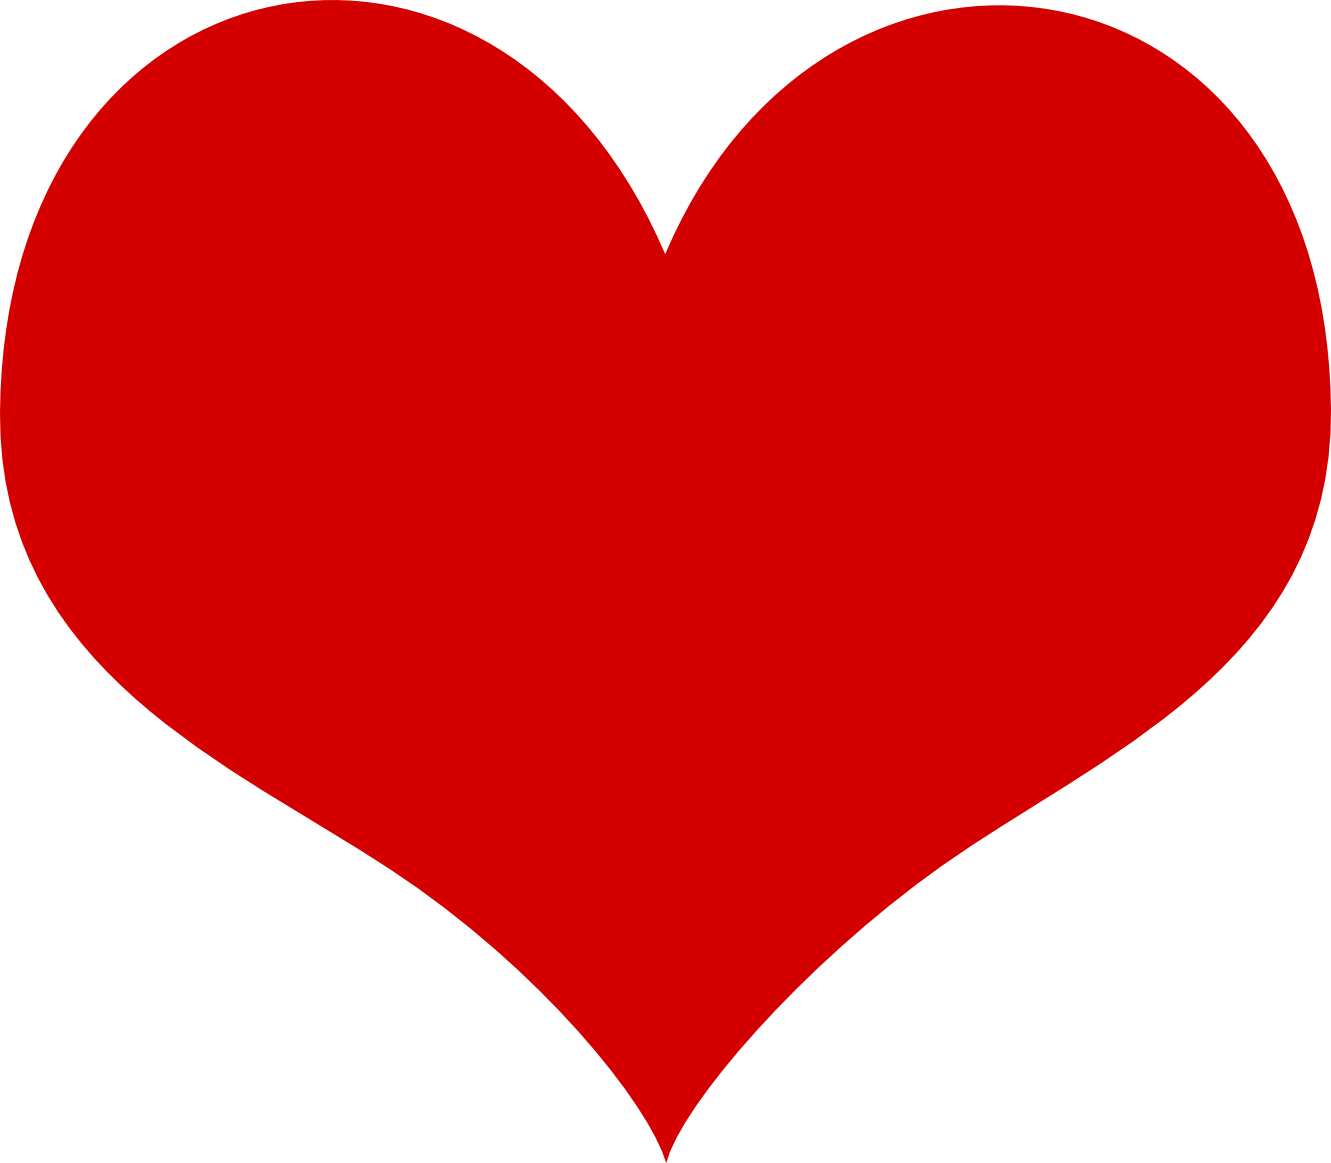 Heart png transparent background. Red image free download